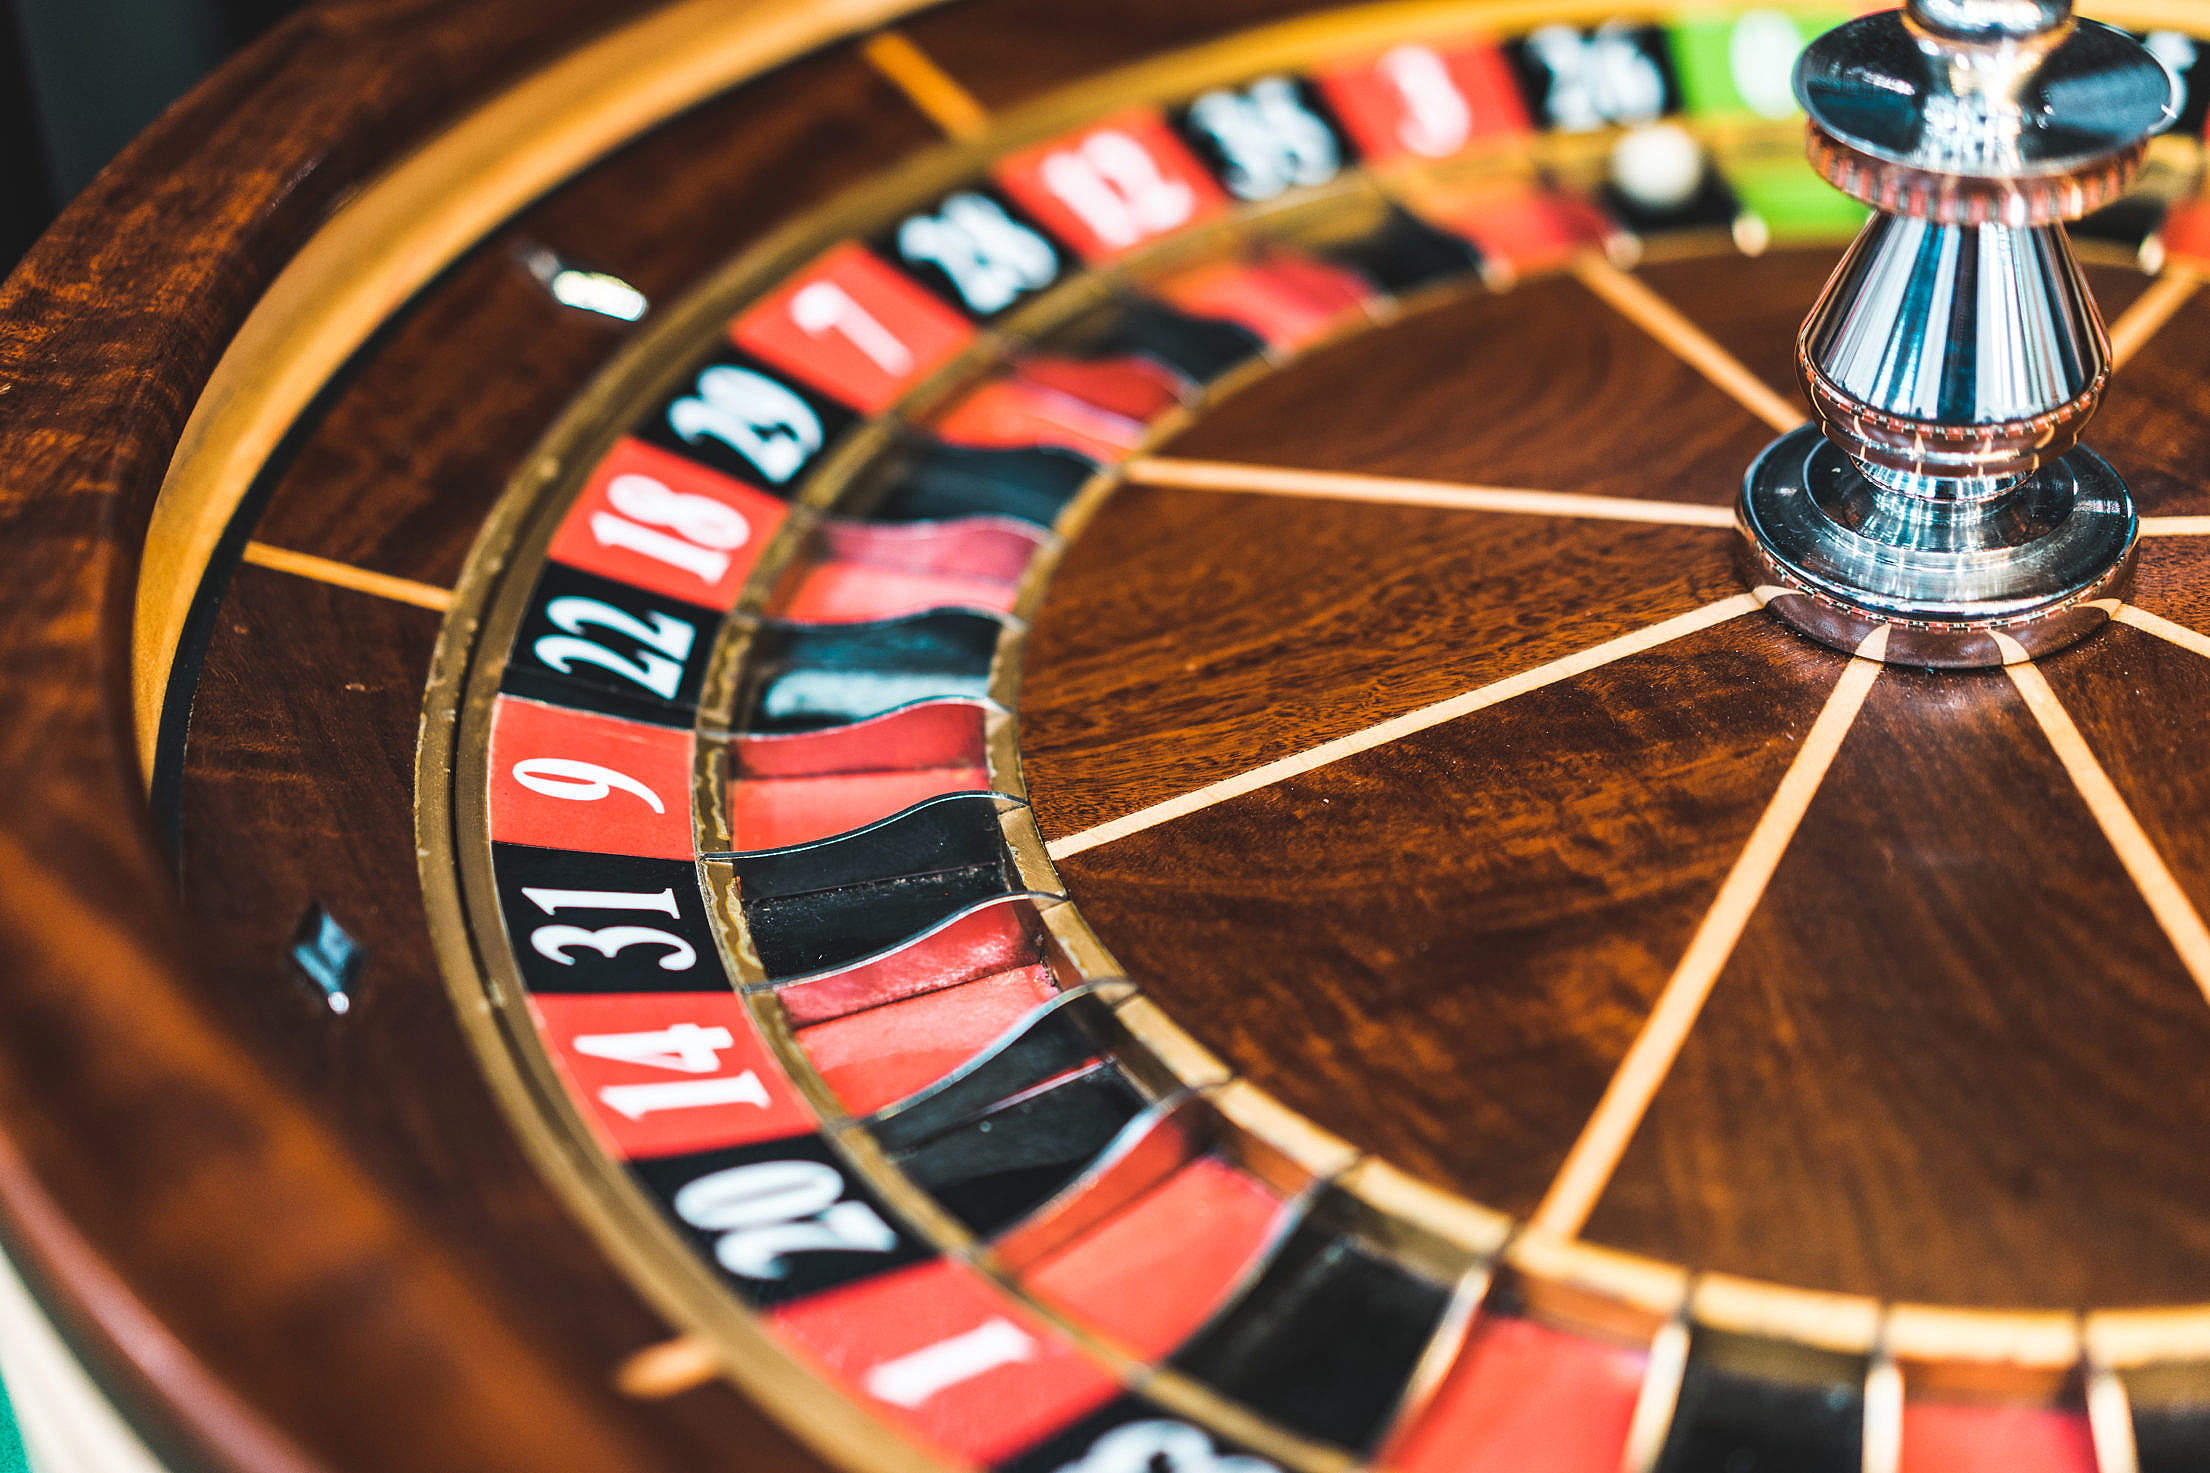 Wooden Roulette Wheel Casino Game Close Up Free Stock Photo